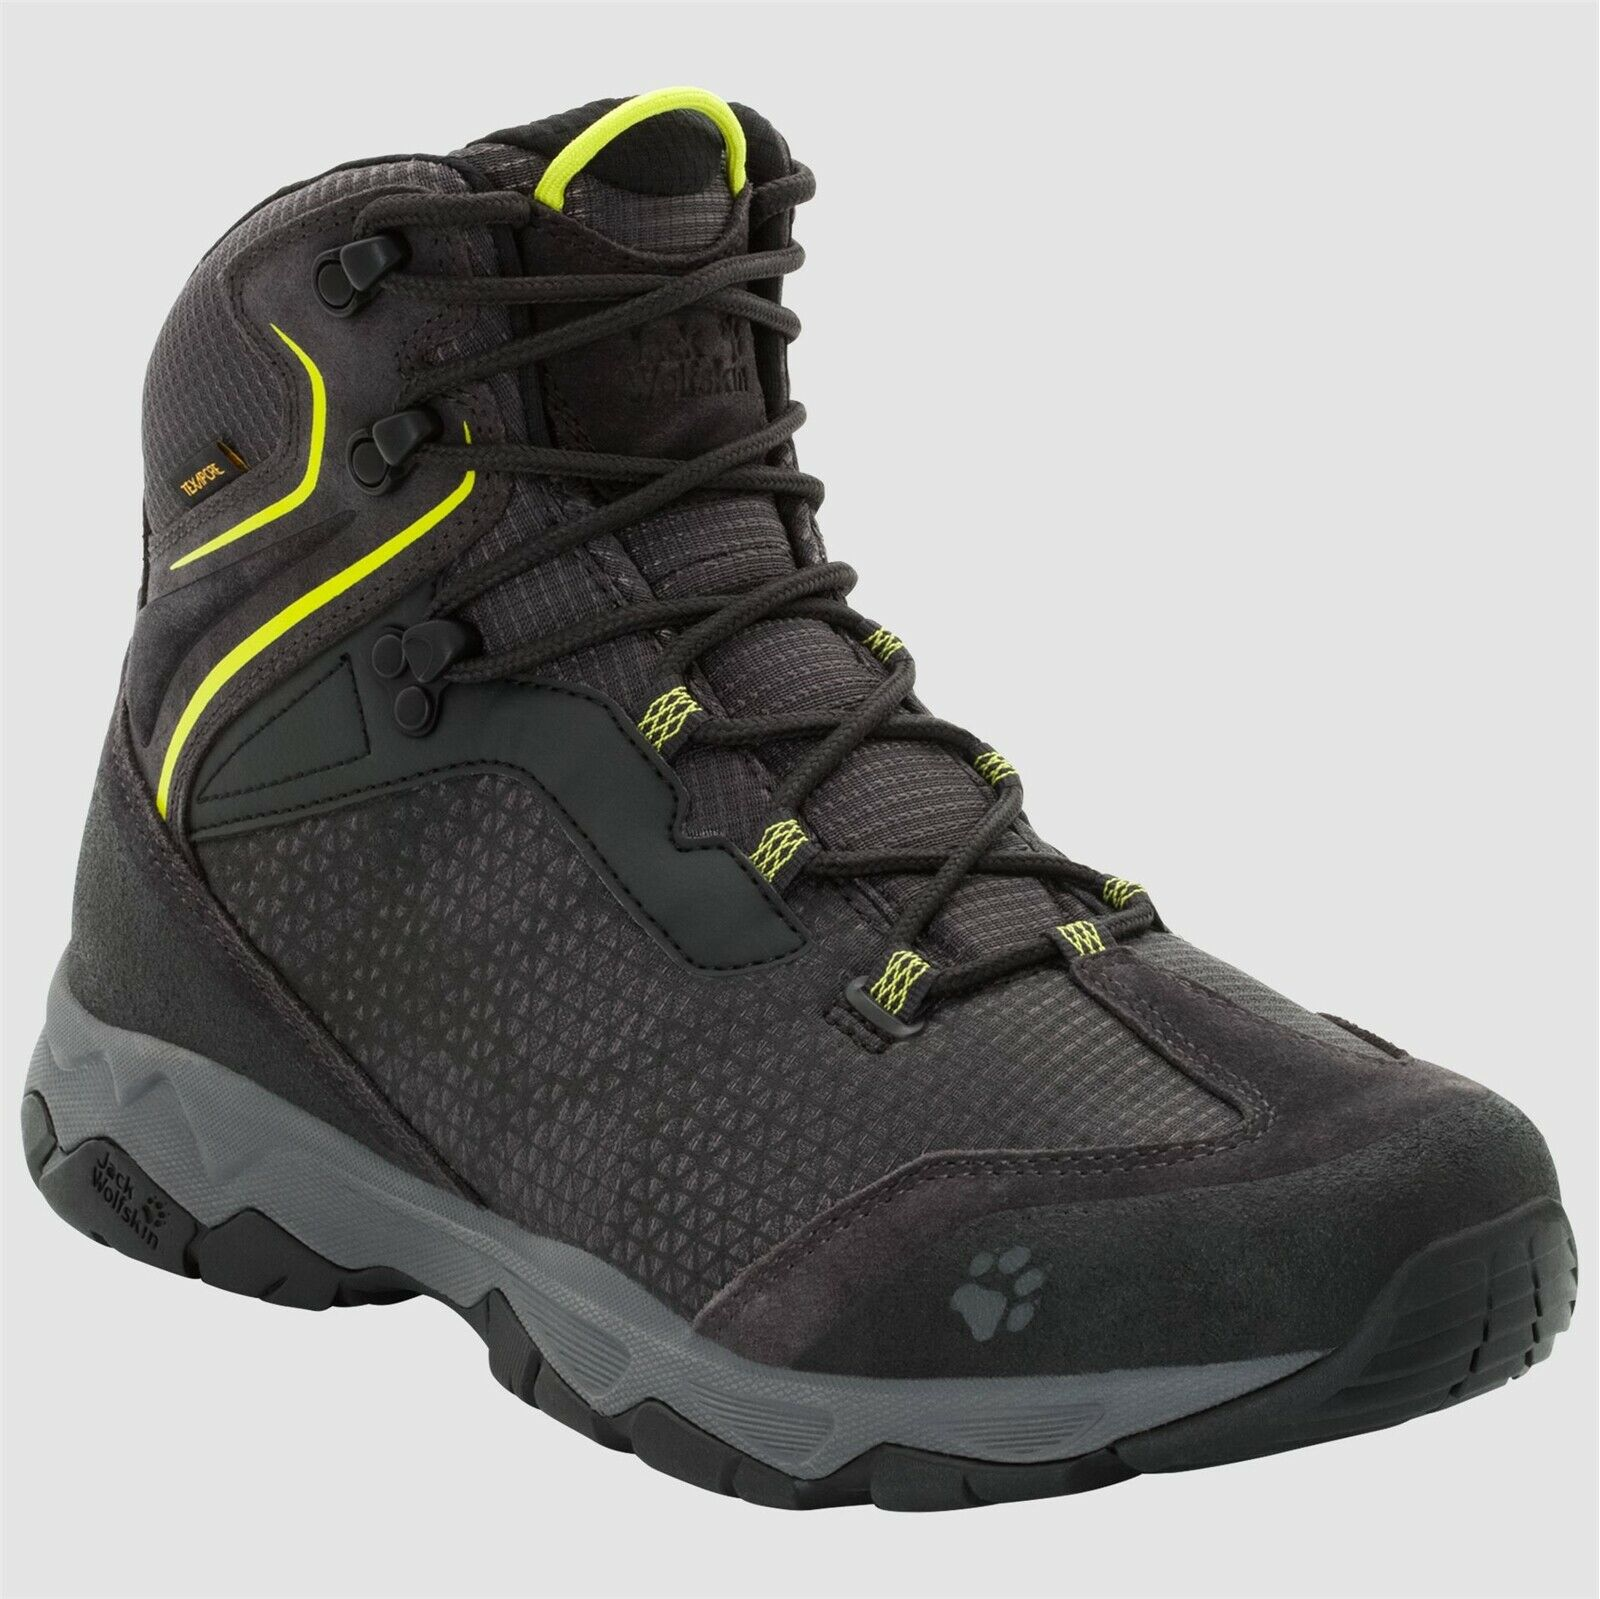 Jack Wolfskin Rock Hunter texapore Low Men = 48 zapatos caballero Lime verde